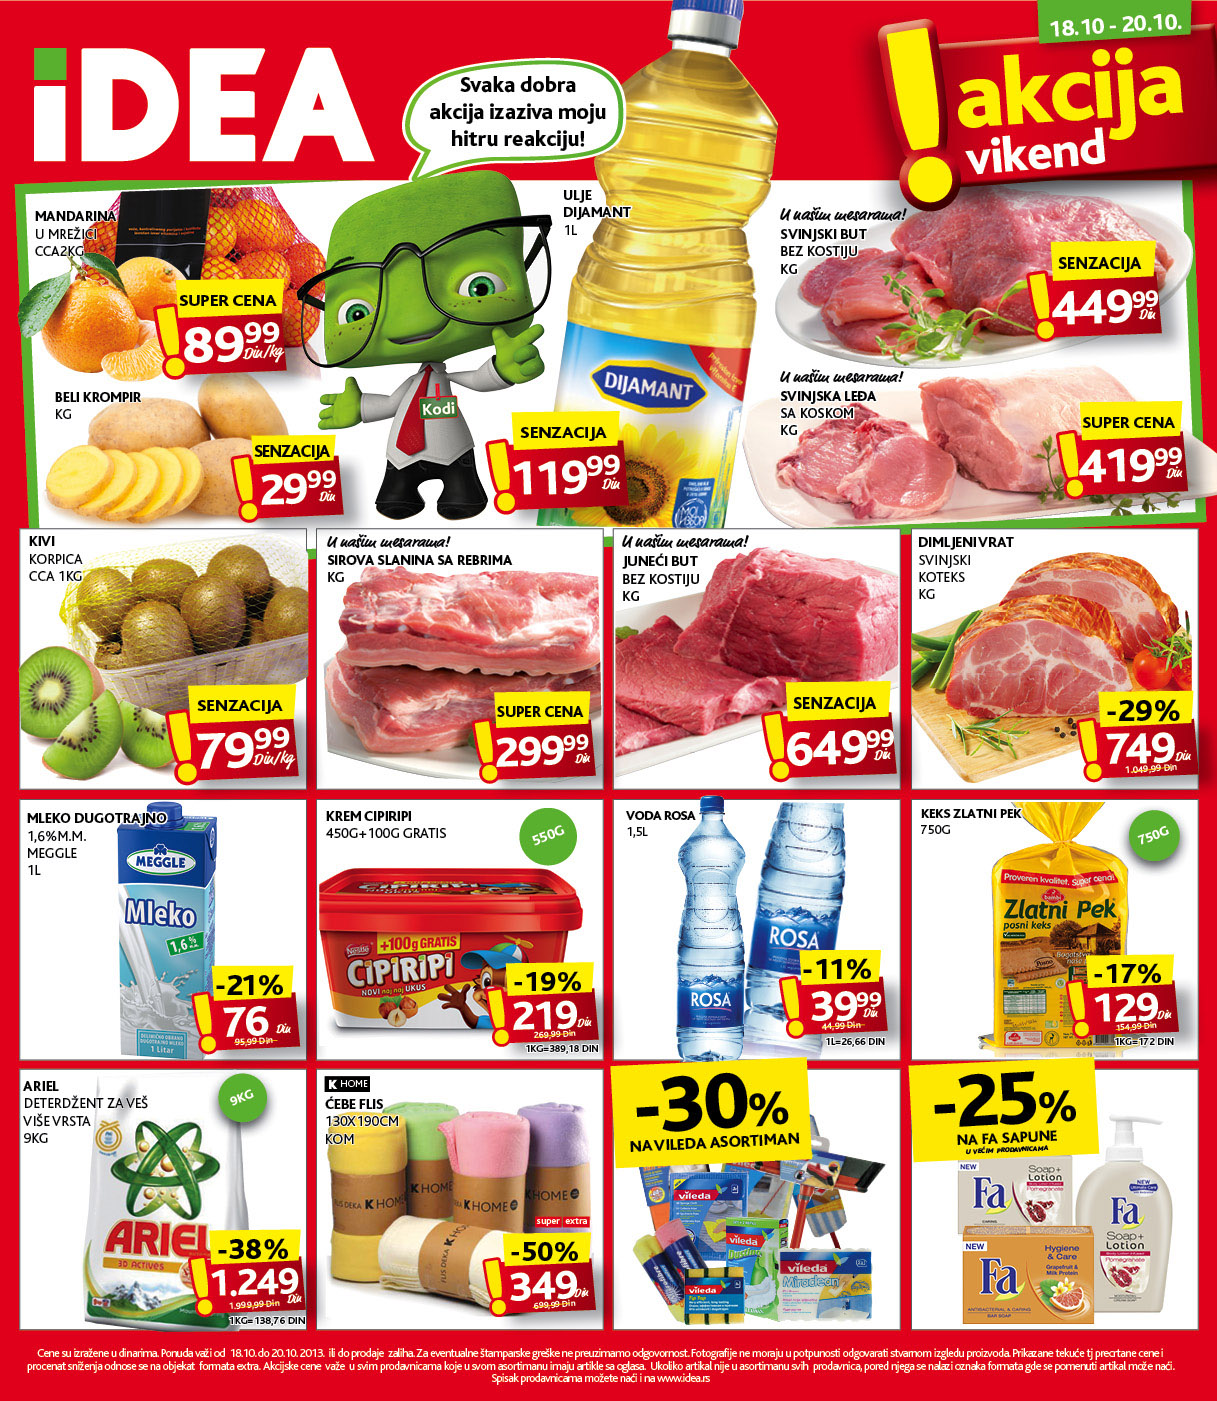 Idea katalog vikend super kupovine